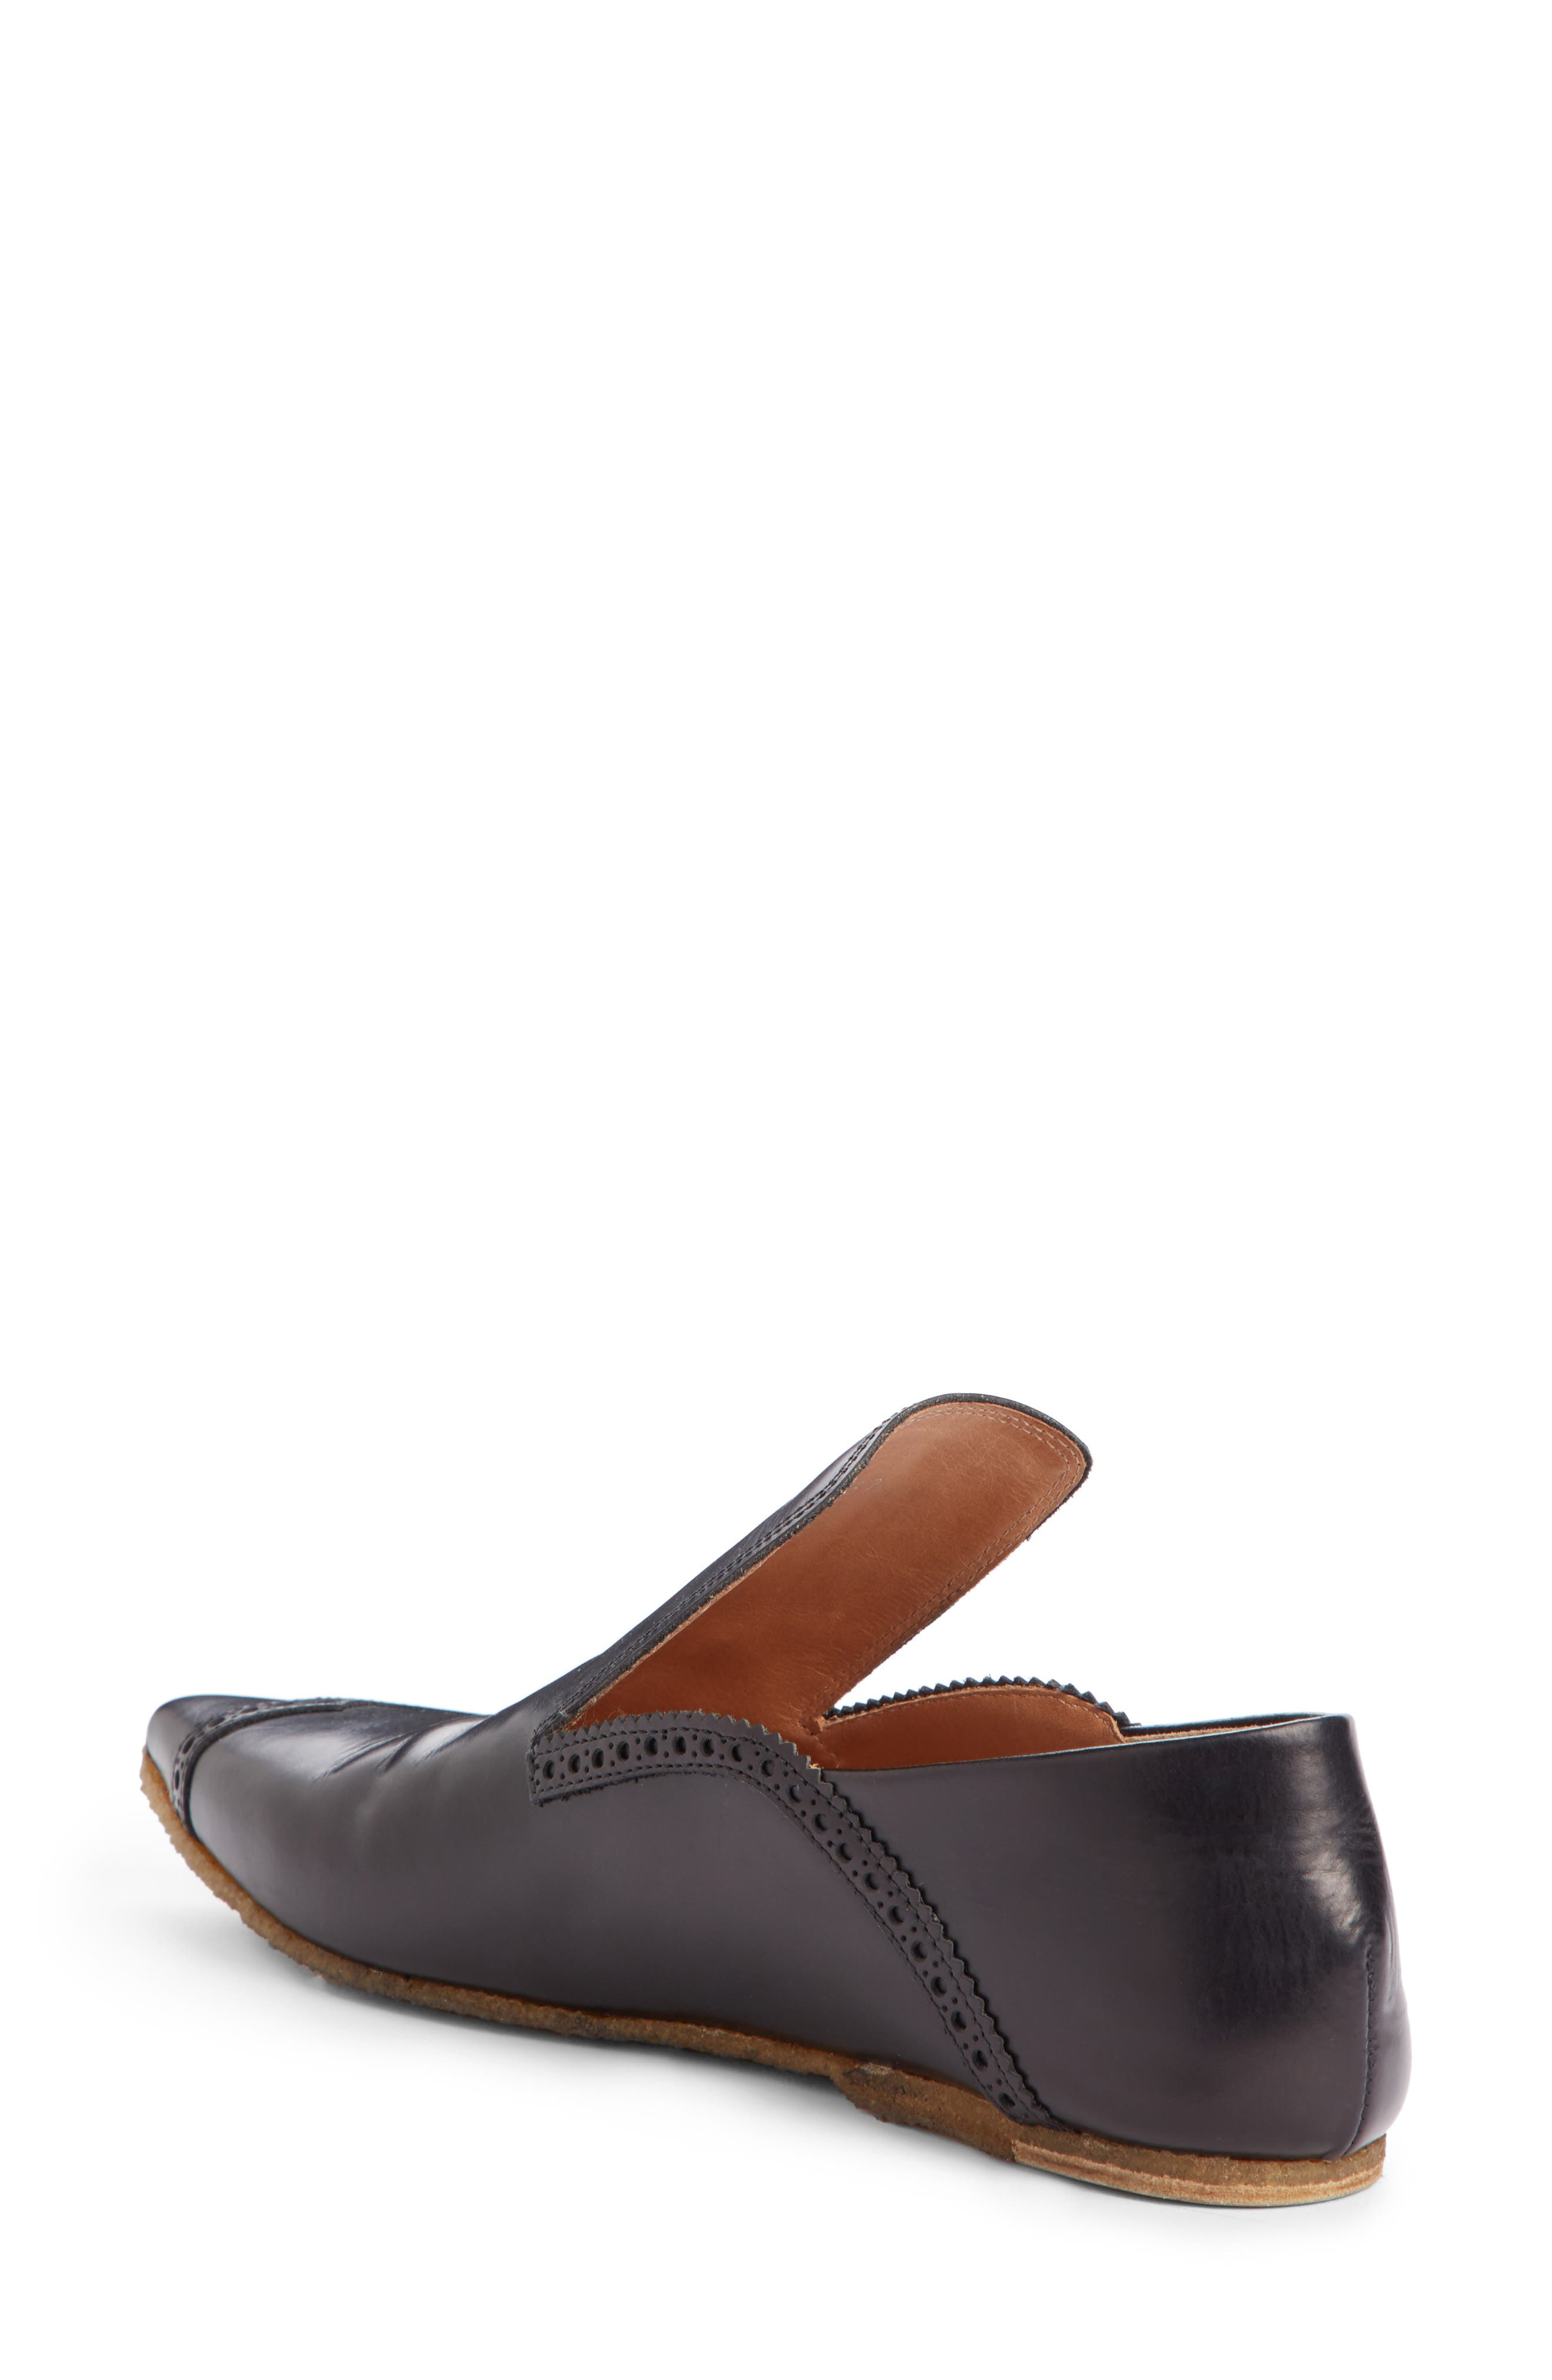 Pointy Toe Loafer,                             Alternate thumbnail 2, color,                             Black